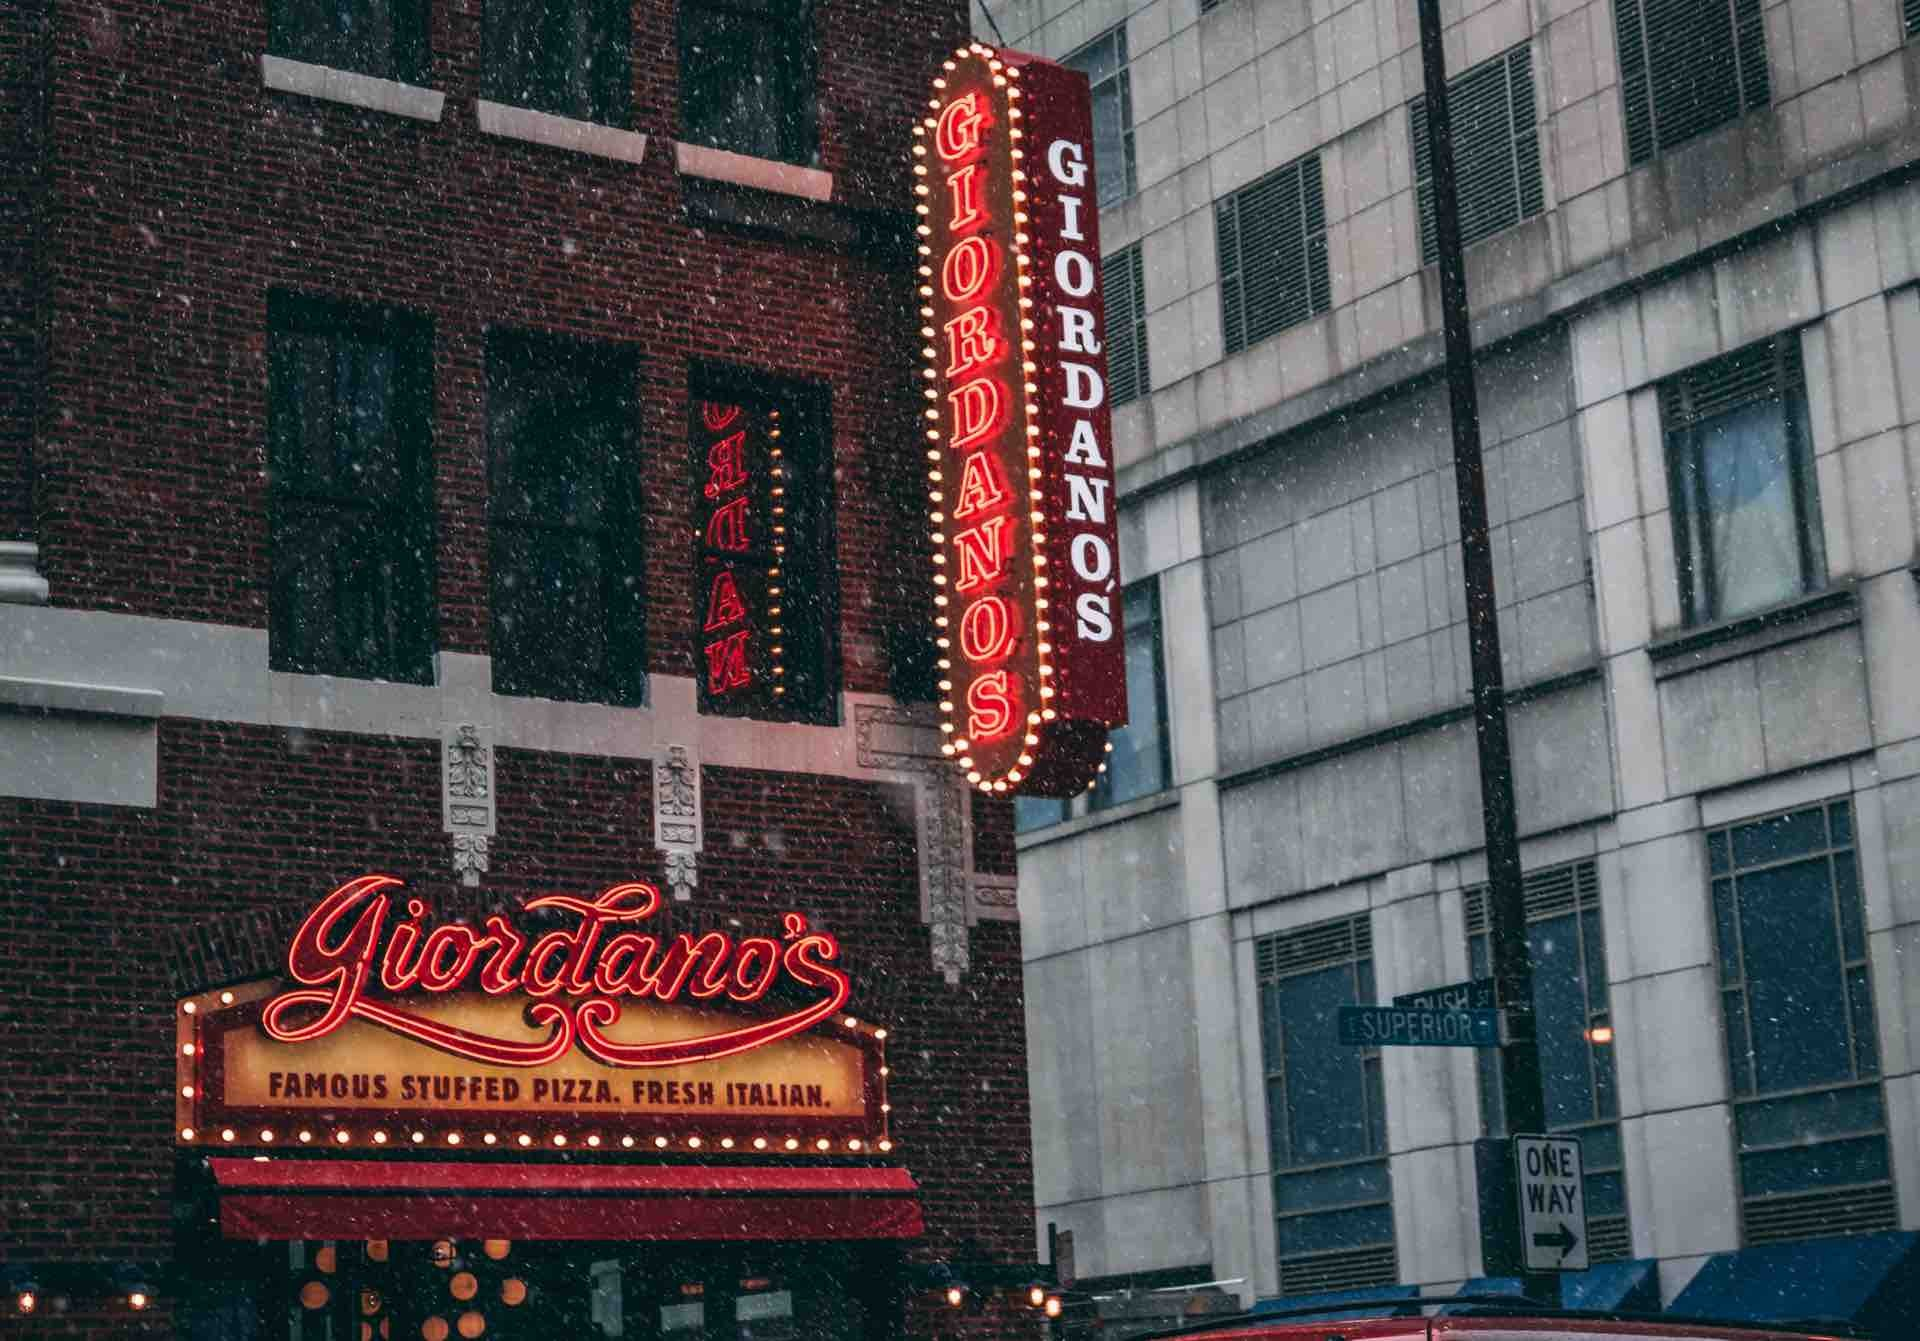 Photo: Matt Antolioli(Apologies in advance to Max if he thinks Giordano's sucks; I just like the photo and I think I actually ate there years ago.)